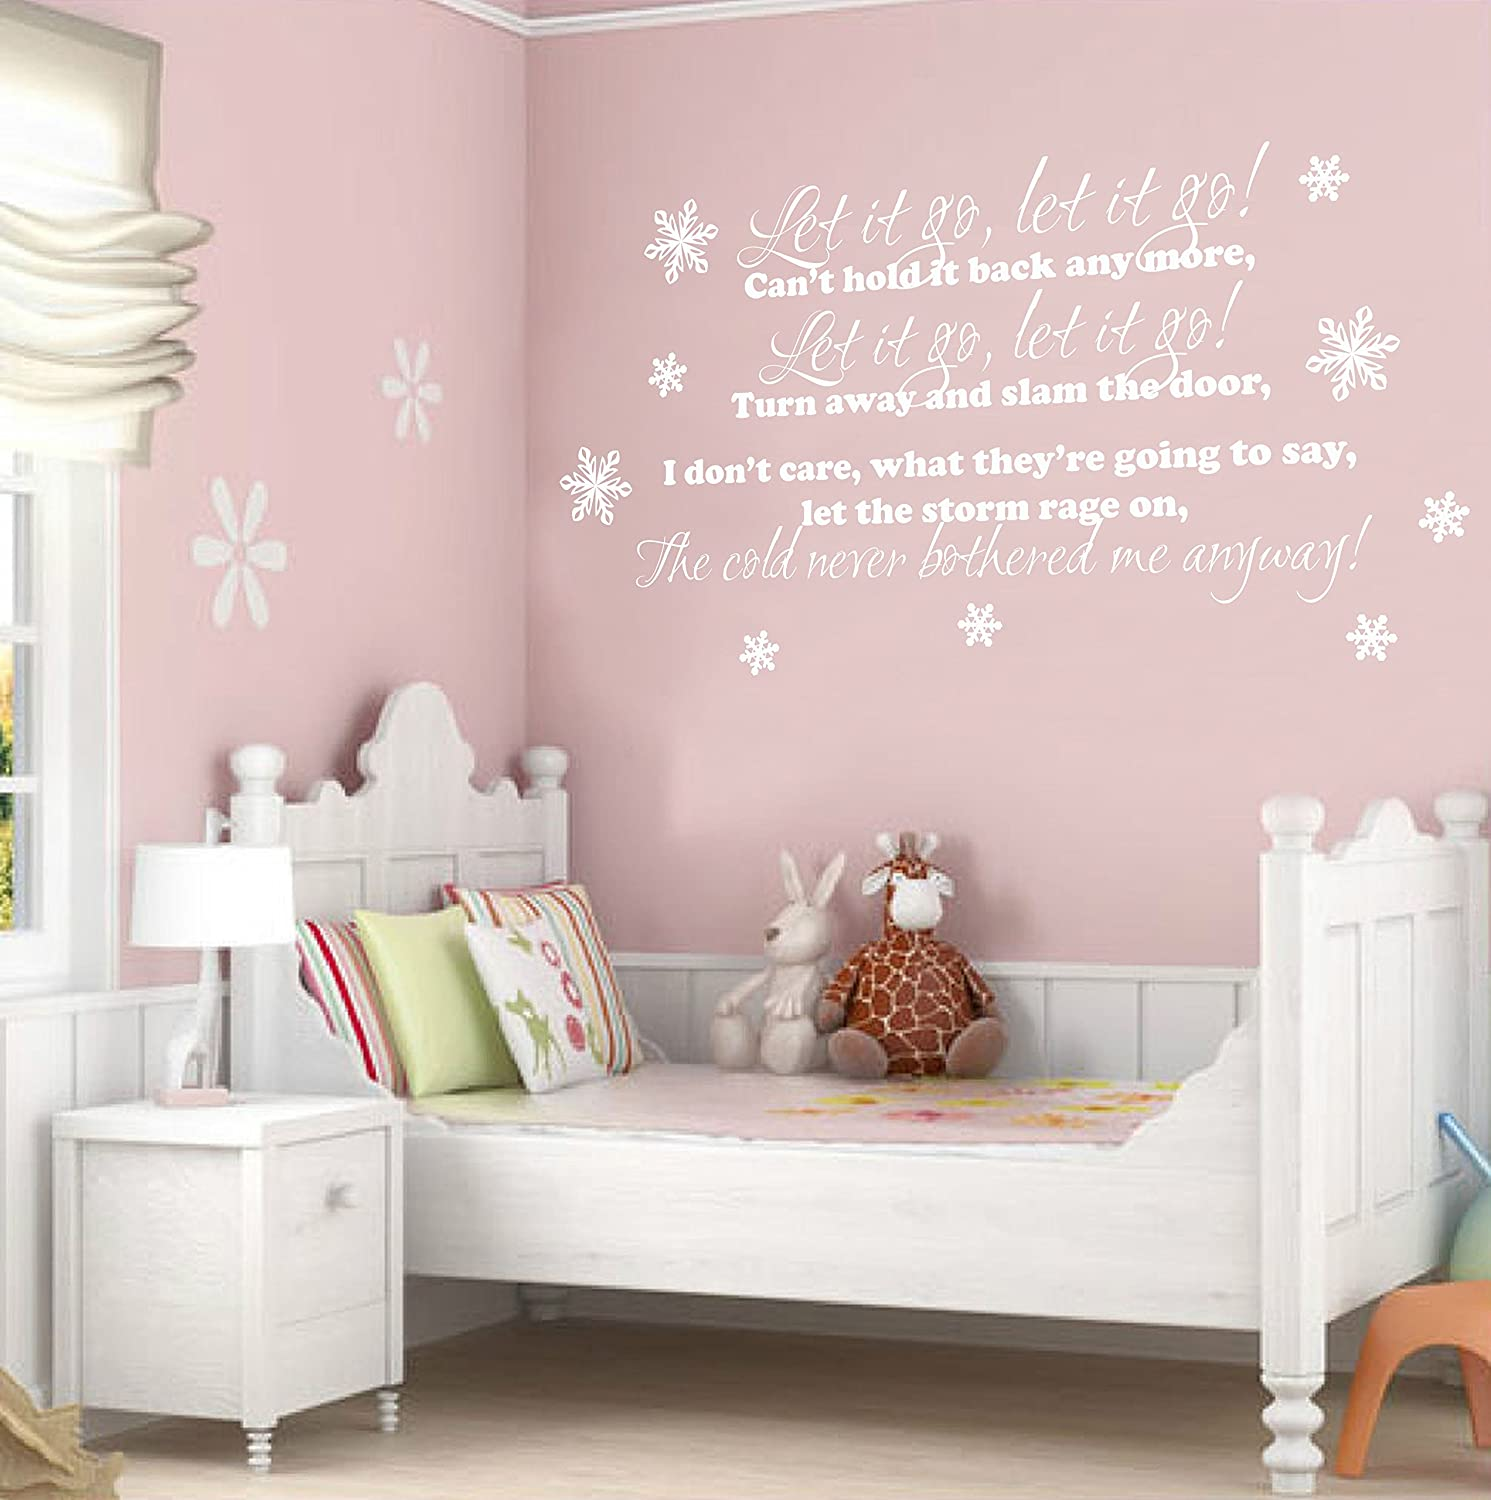 TheStickerStop   Disney Frozen   Let It Go Lyrics   Wall Sticker Wall Art  (Large 680 X 1300mm): Amazon.co.uk: Kitchen U0026 Home